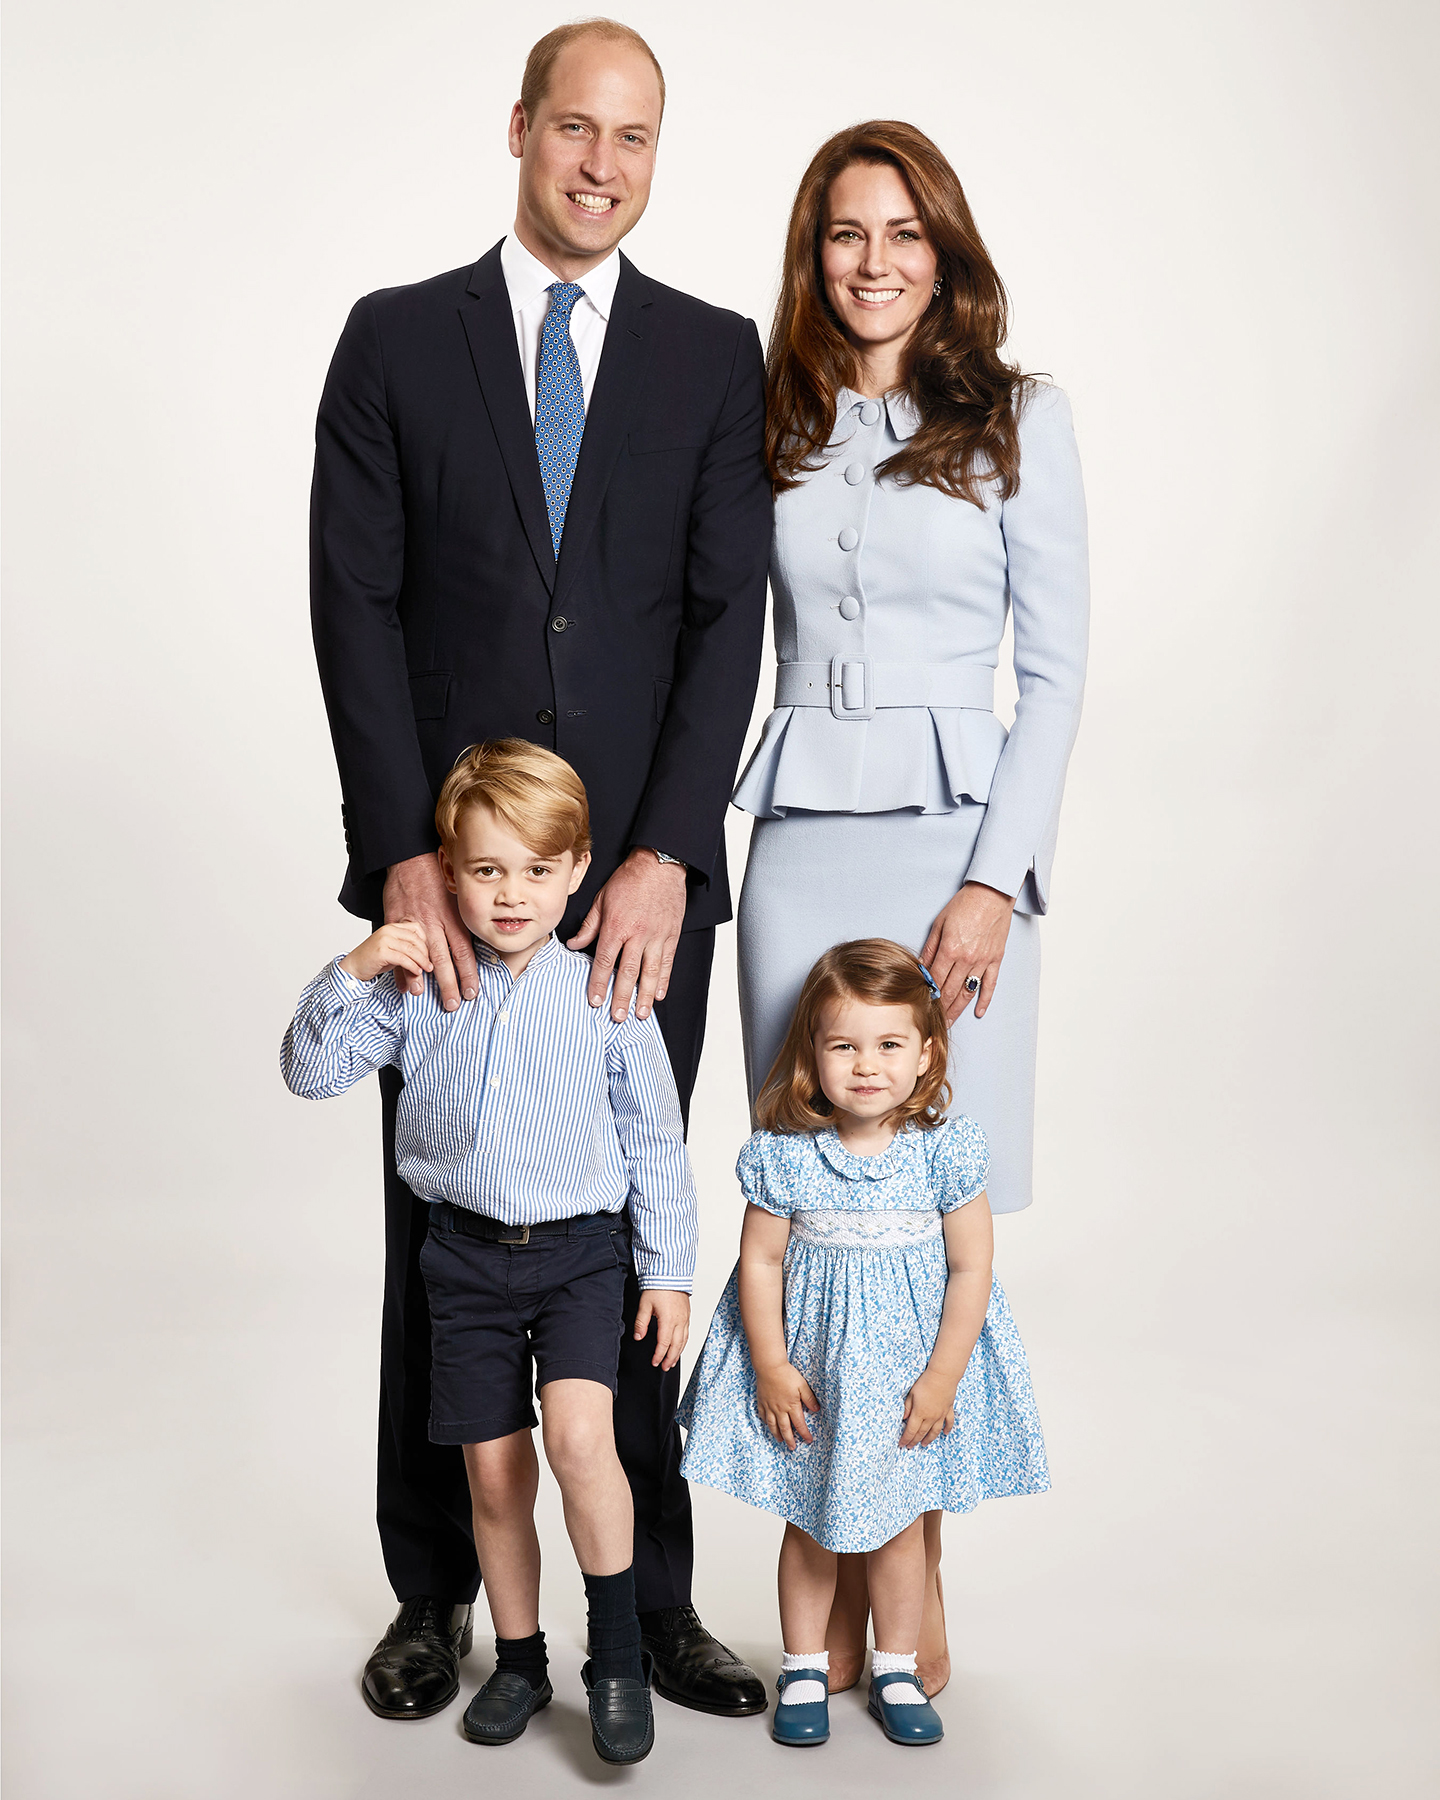 prince-william-kate-middleton-prince-george-princess-charlotte.jpg (1440×1800)